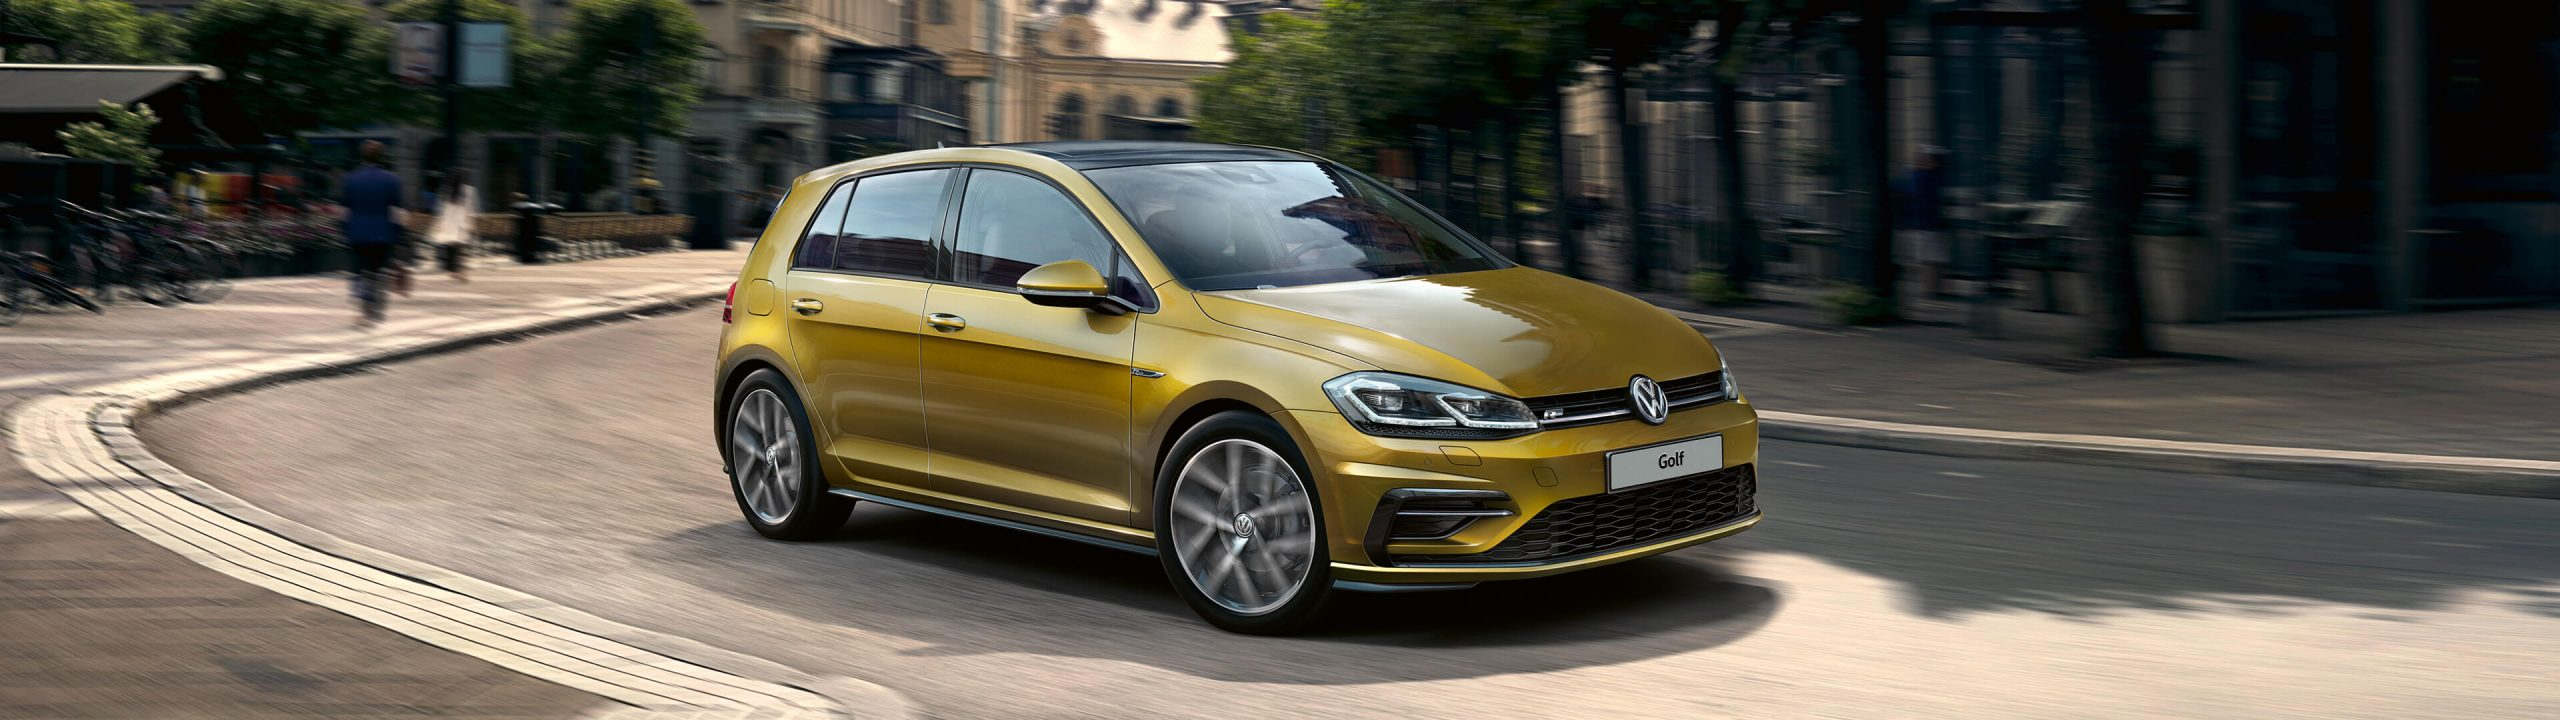 Новый Volkswagen Golf 2020-2021